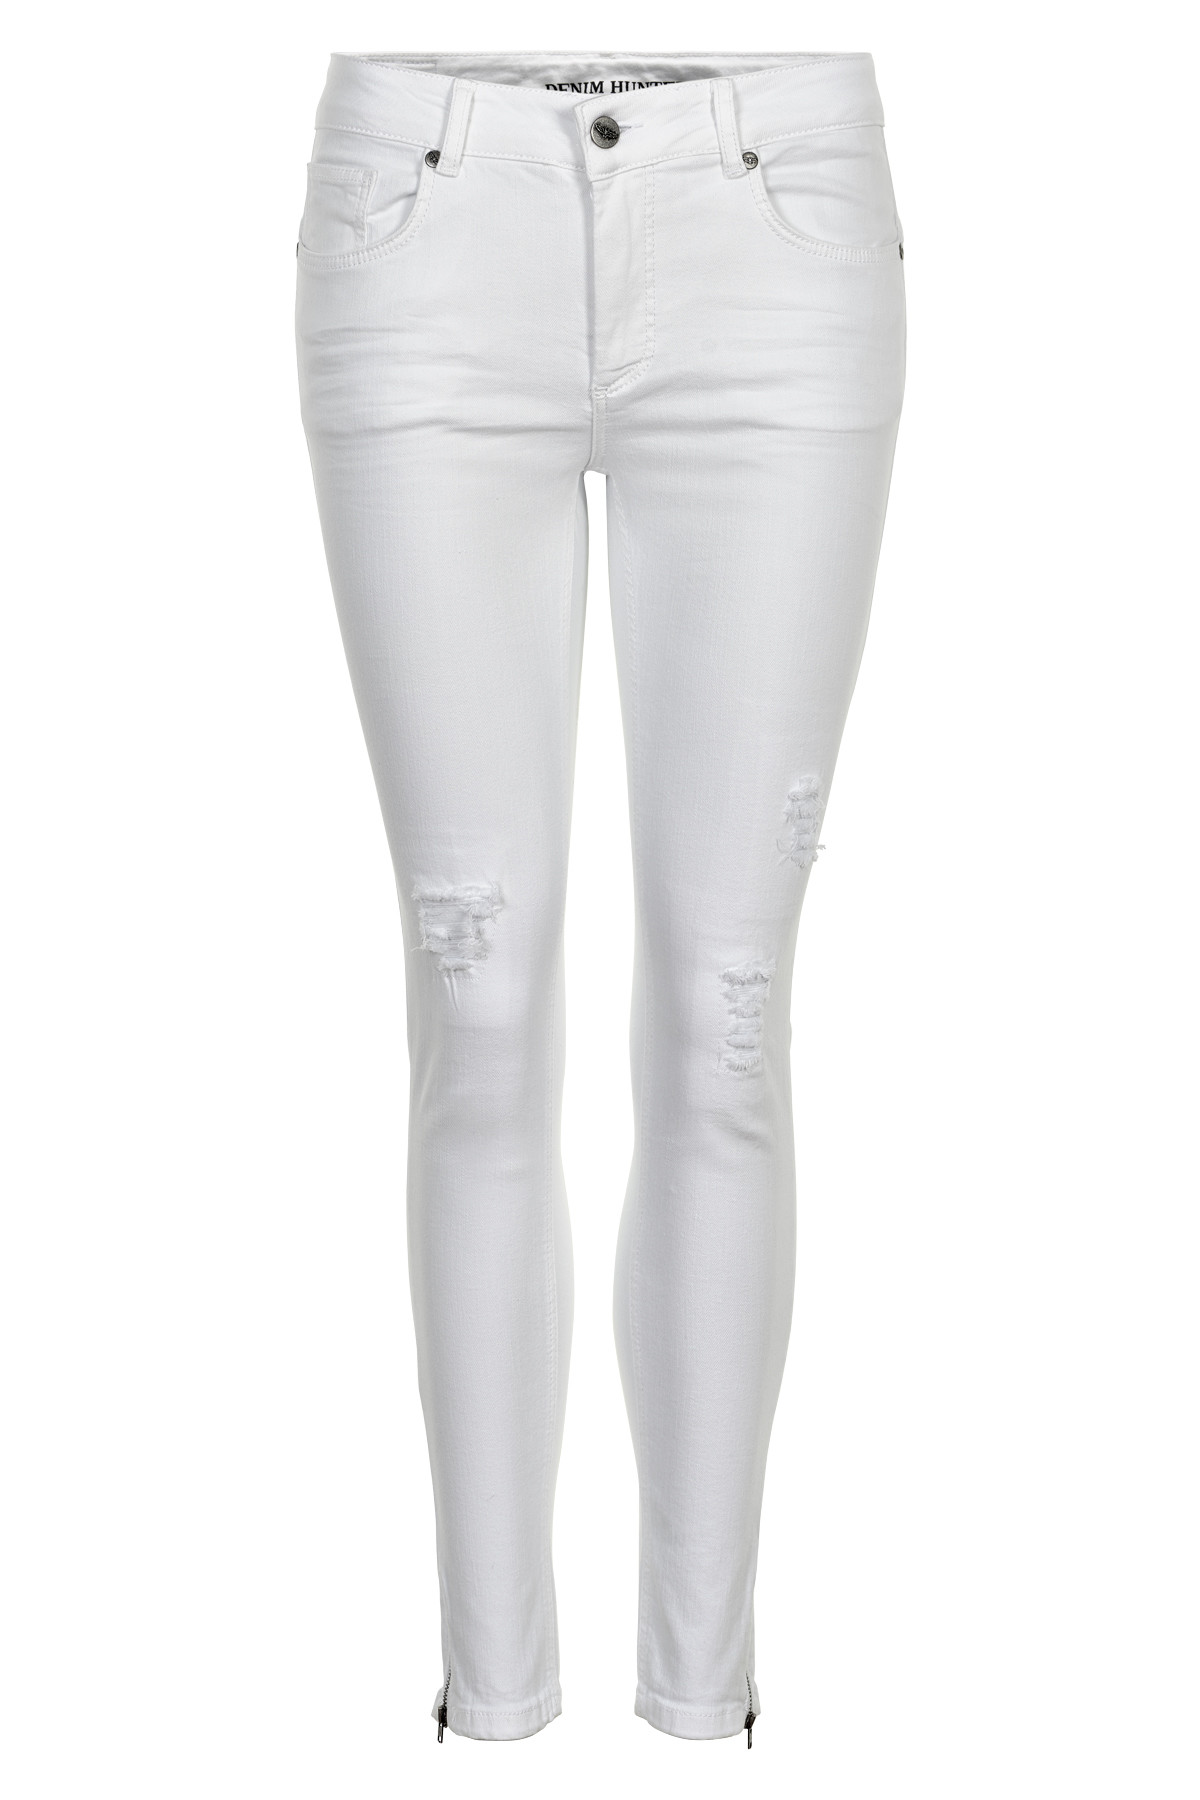 Image of   Denim Hunter CELINA ZIP TORN JEANS 10701894 O (Optical White 30001, 33)